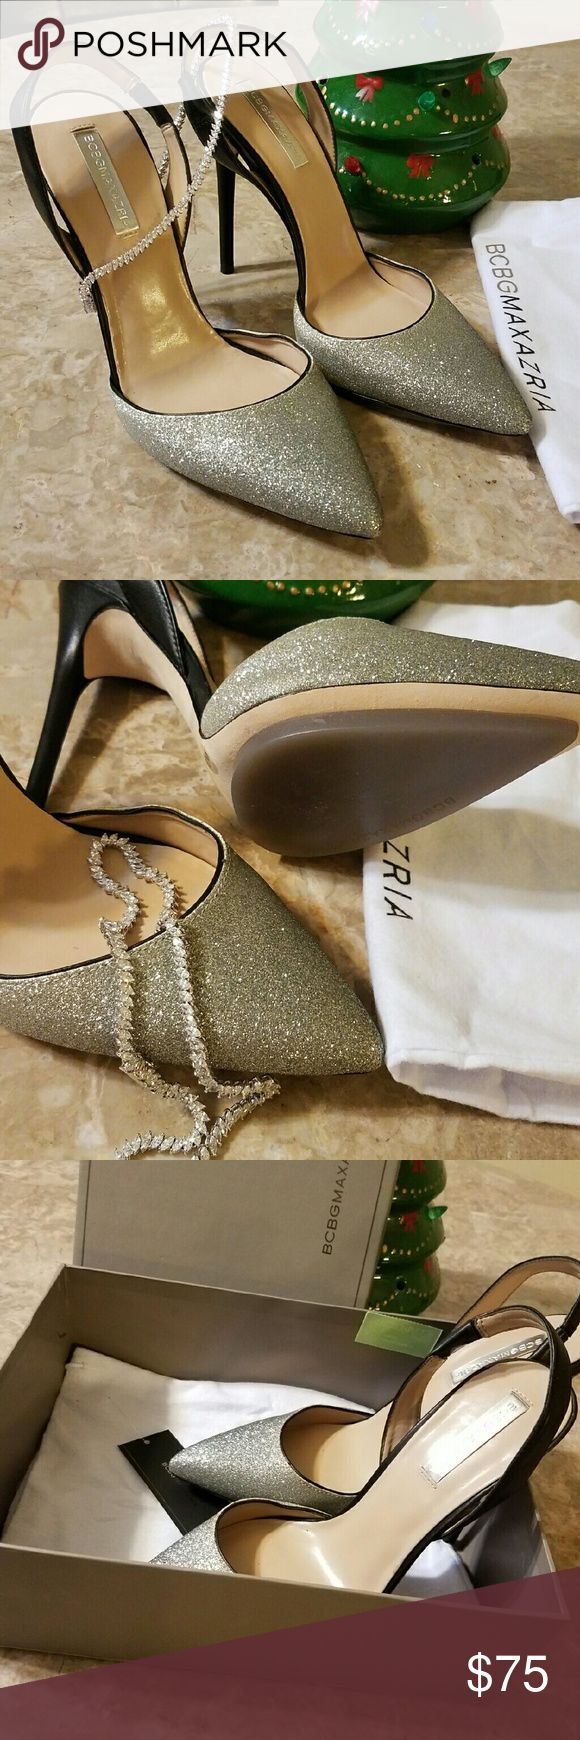 Bcbg slingback pumps size 9 Silver and black leather slingback  pump shoes. Very comfortable very glamorous. Heel height 4in garment bag included (nwt). BCBG Shoes Heels